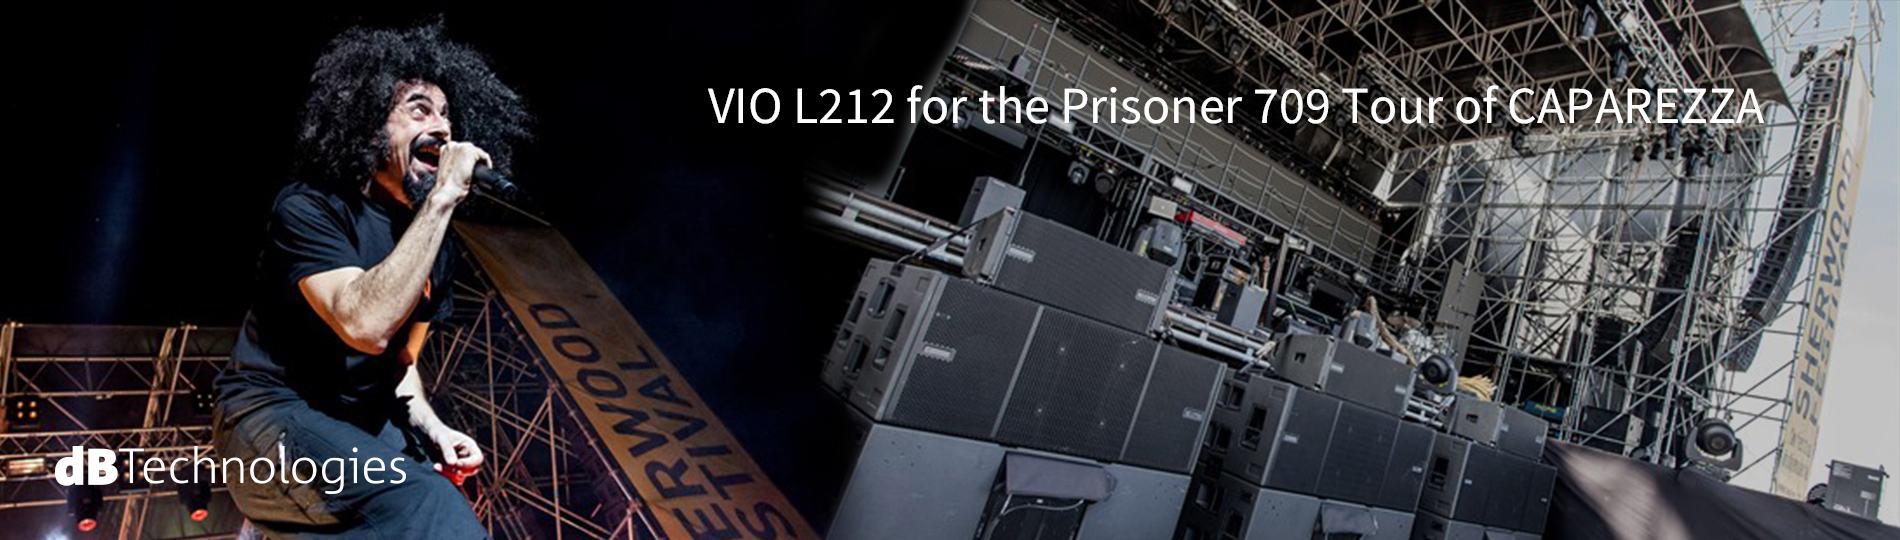 VIO L212 for the Prisoner 709 Tour of CAPAREZZA